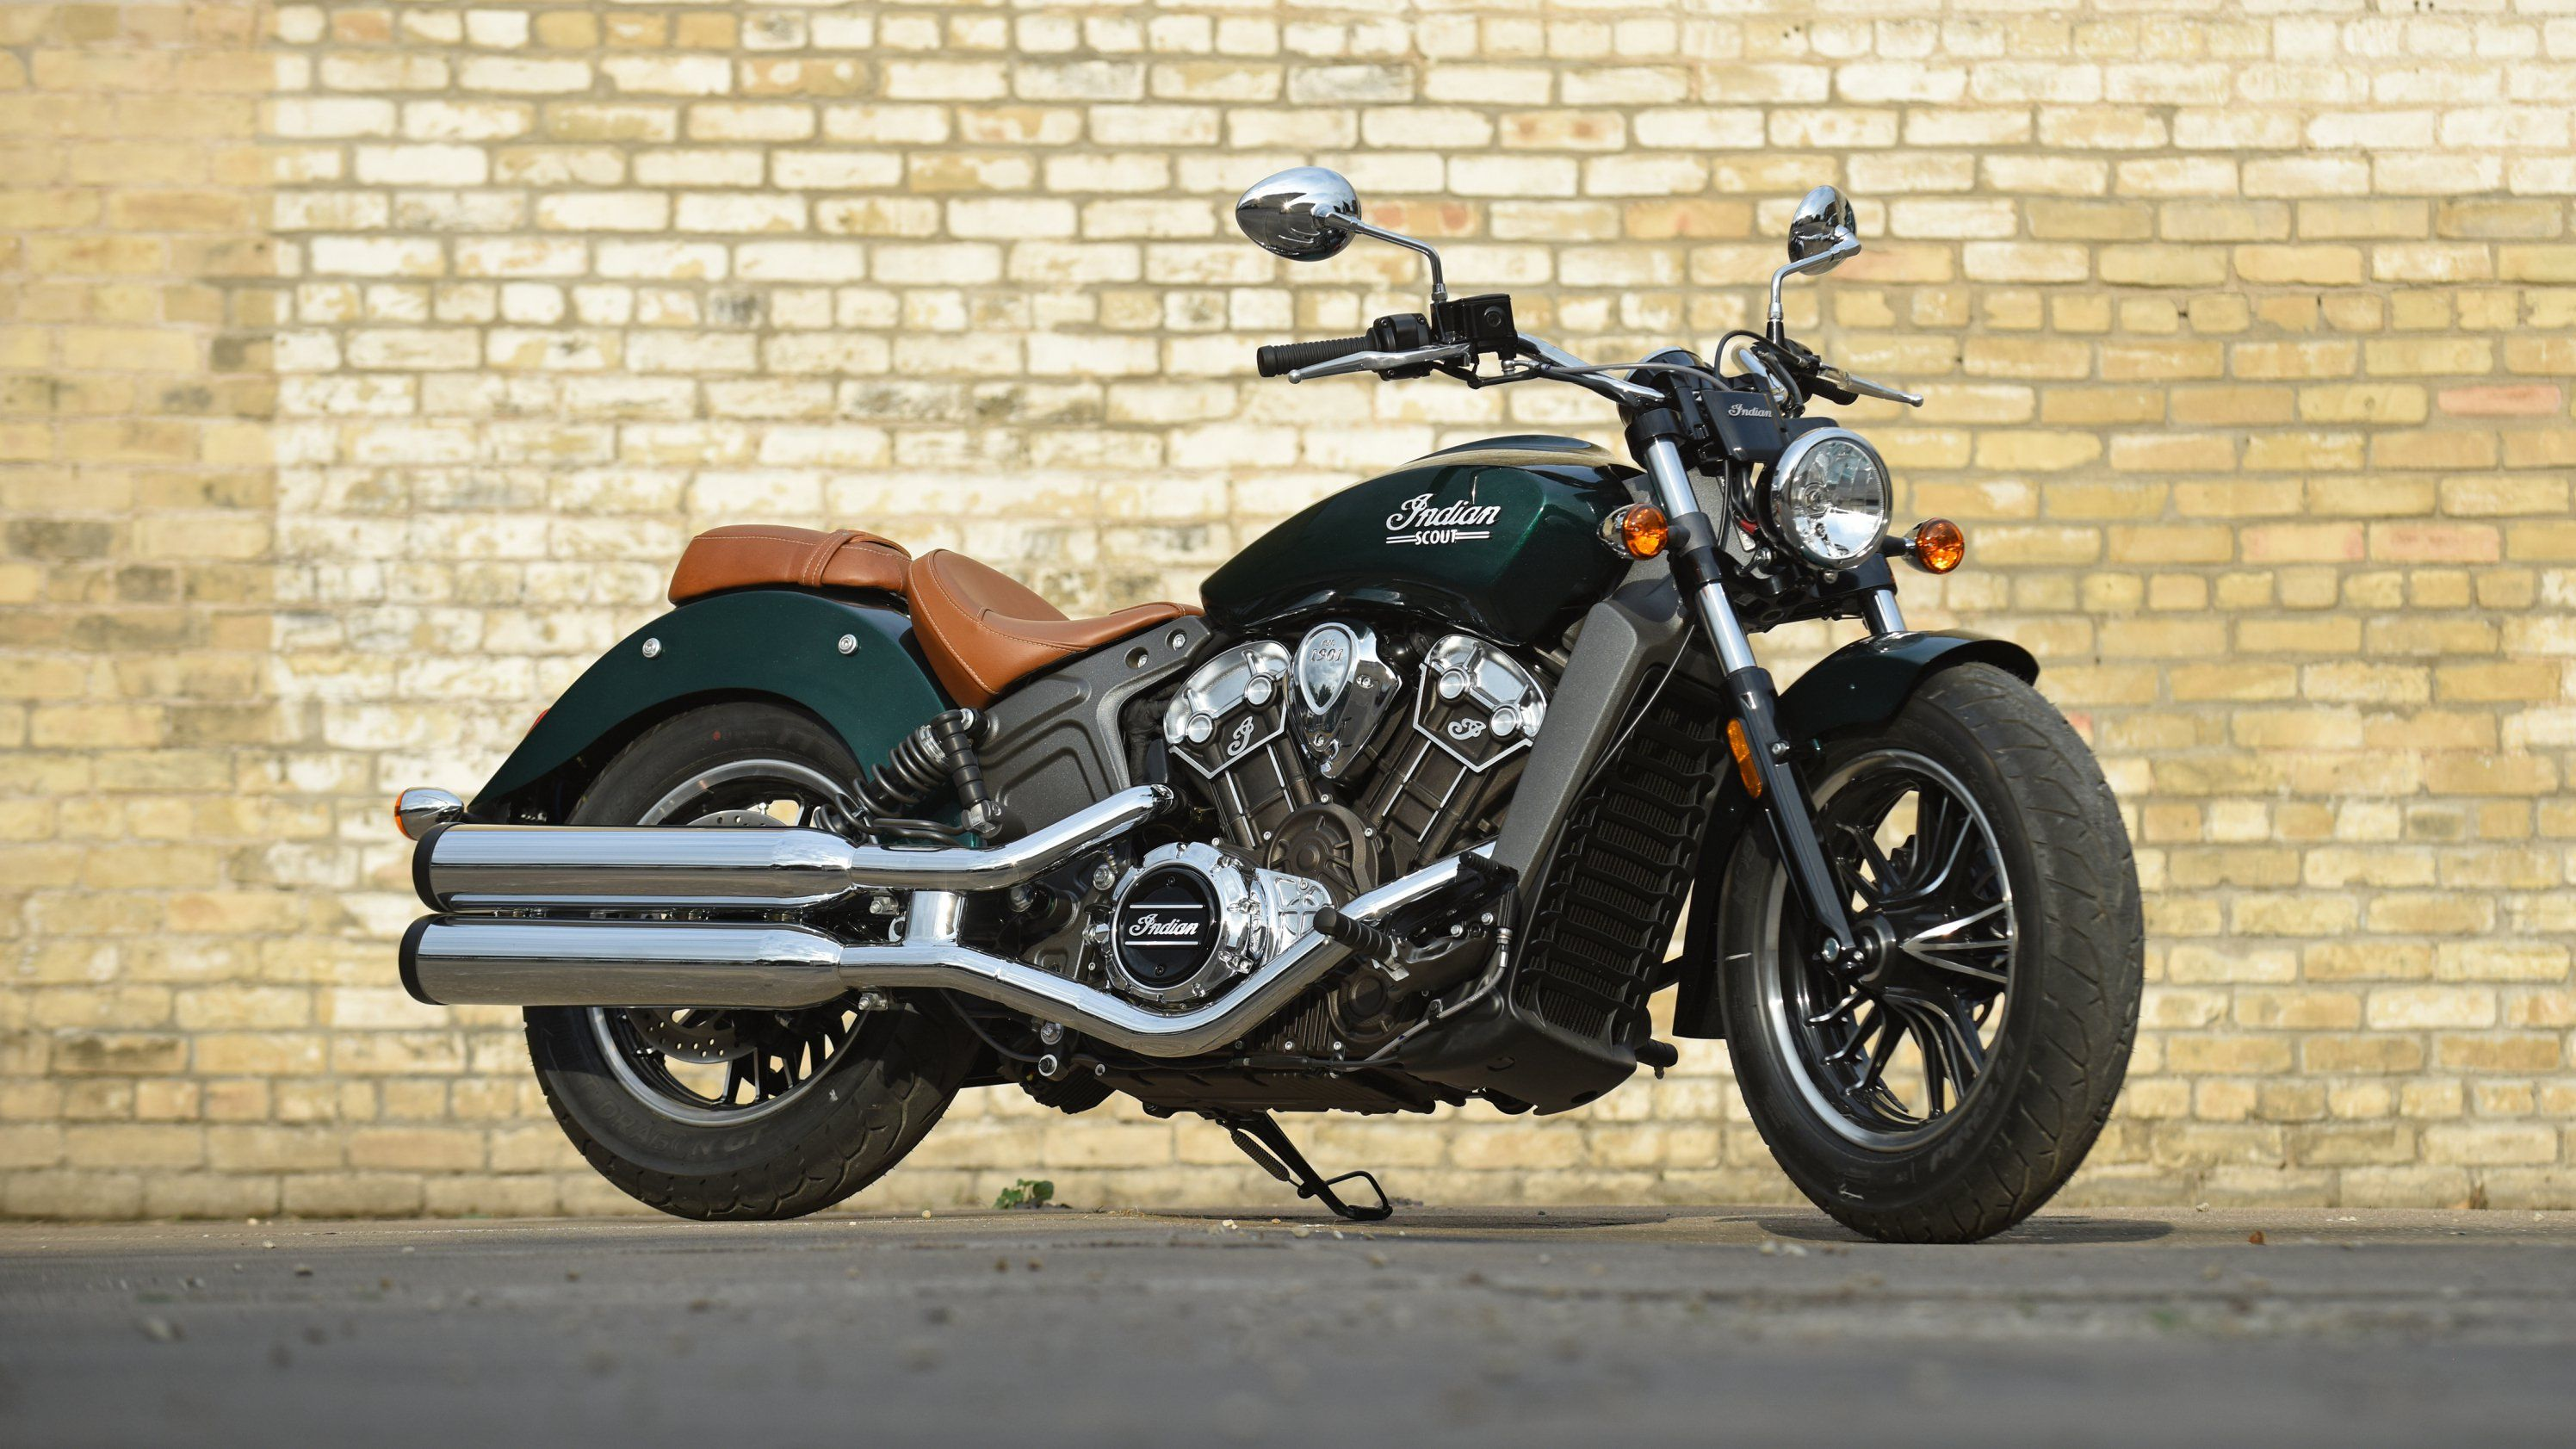 2016 2019 Indian Motorcycle Scout Scout Sixty Indian Motorcycle Scout Indian Motorcycle Indian Scout [ 1683 x 2992 Pixel ]